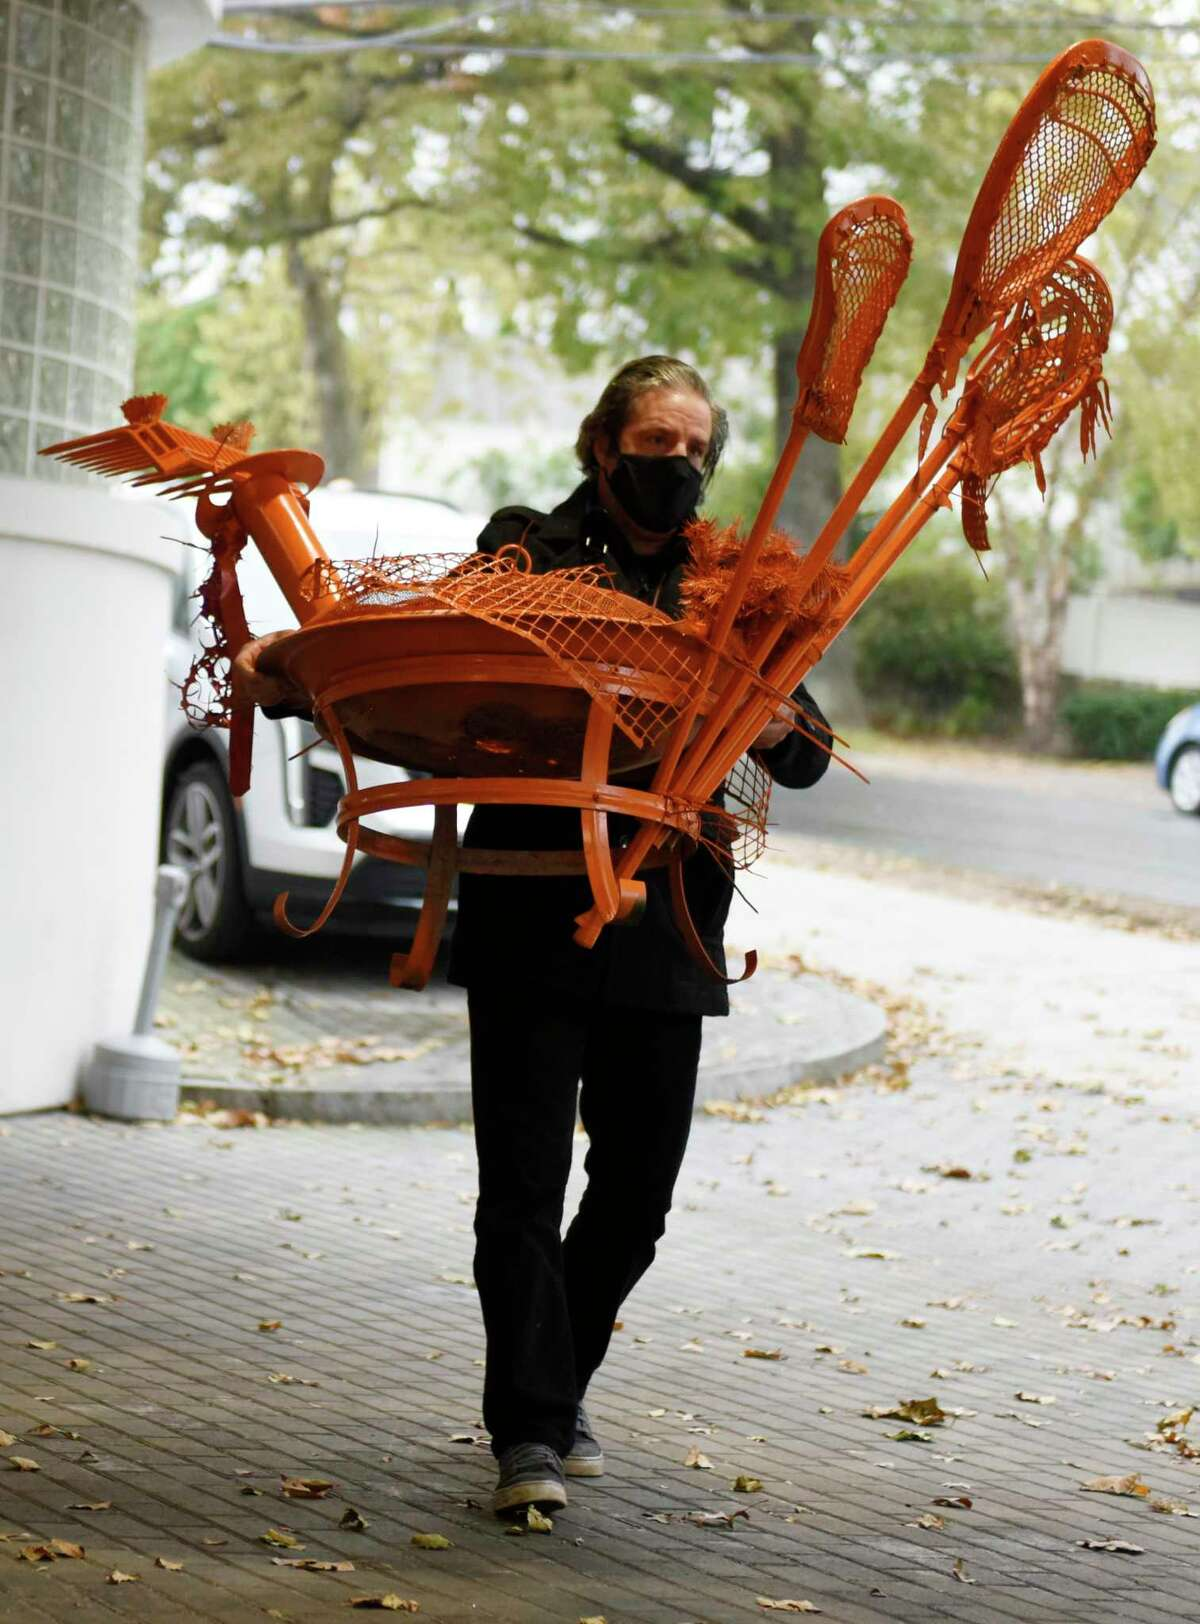 Artist Michael Manning carries one of his and Ben Quesnel's turkey sculptures to the sign up station for the Greenwich Alliance for Education Turkey Trot Month-Long Fitness Challenge at Cadillac of Greenwich in Greenwich, Conn. Sunday, Nov. 1, 2020. The tenth anniversary of the Turkey Trot 5K was reimagined this year as a month-long fitness challenge due to restrictions from the pandemic. The Turkey Trot, which typically draws more than 1,000 participants, is Greenwich Alliance for Education's largest yearly fundraiser. The group hopes to raise $50,000 this year to support programs at Greenwich Public Schools.